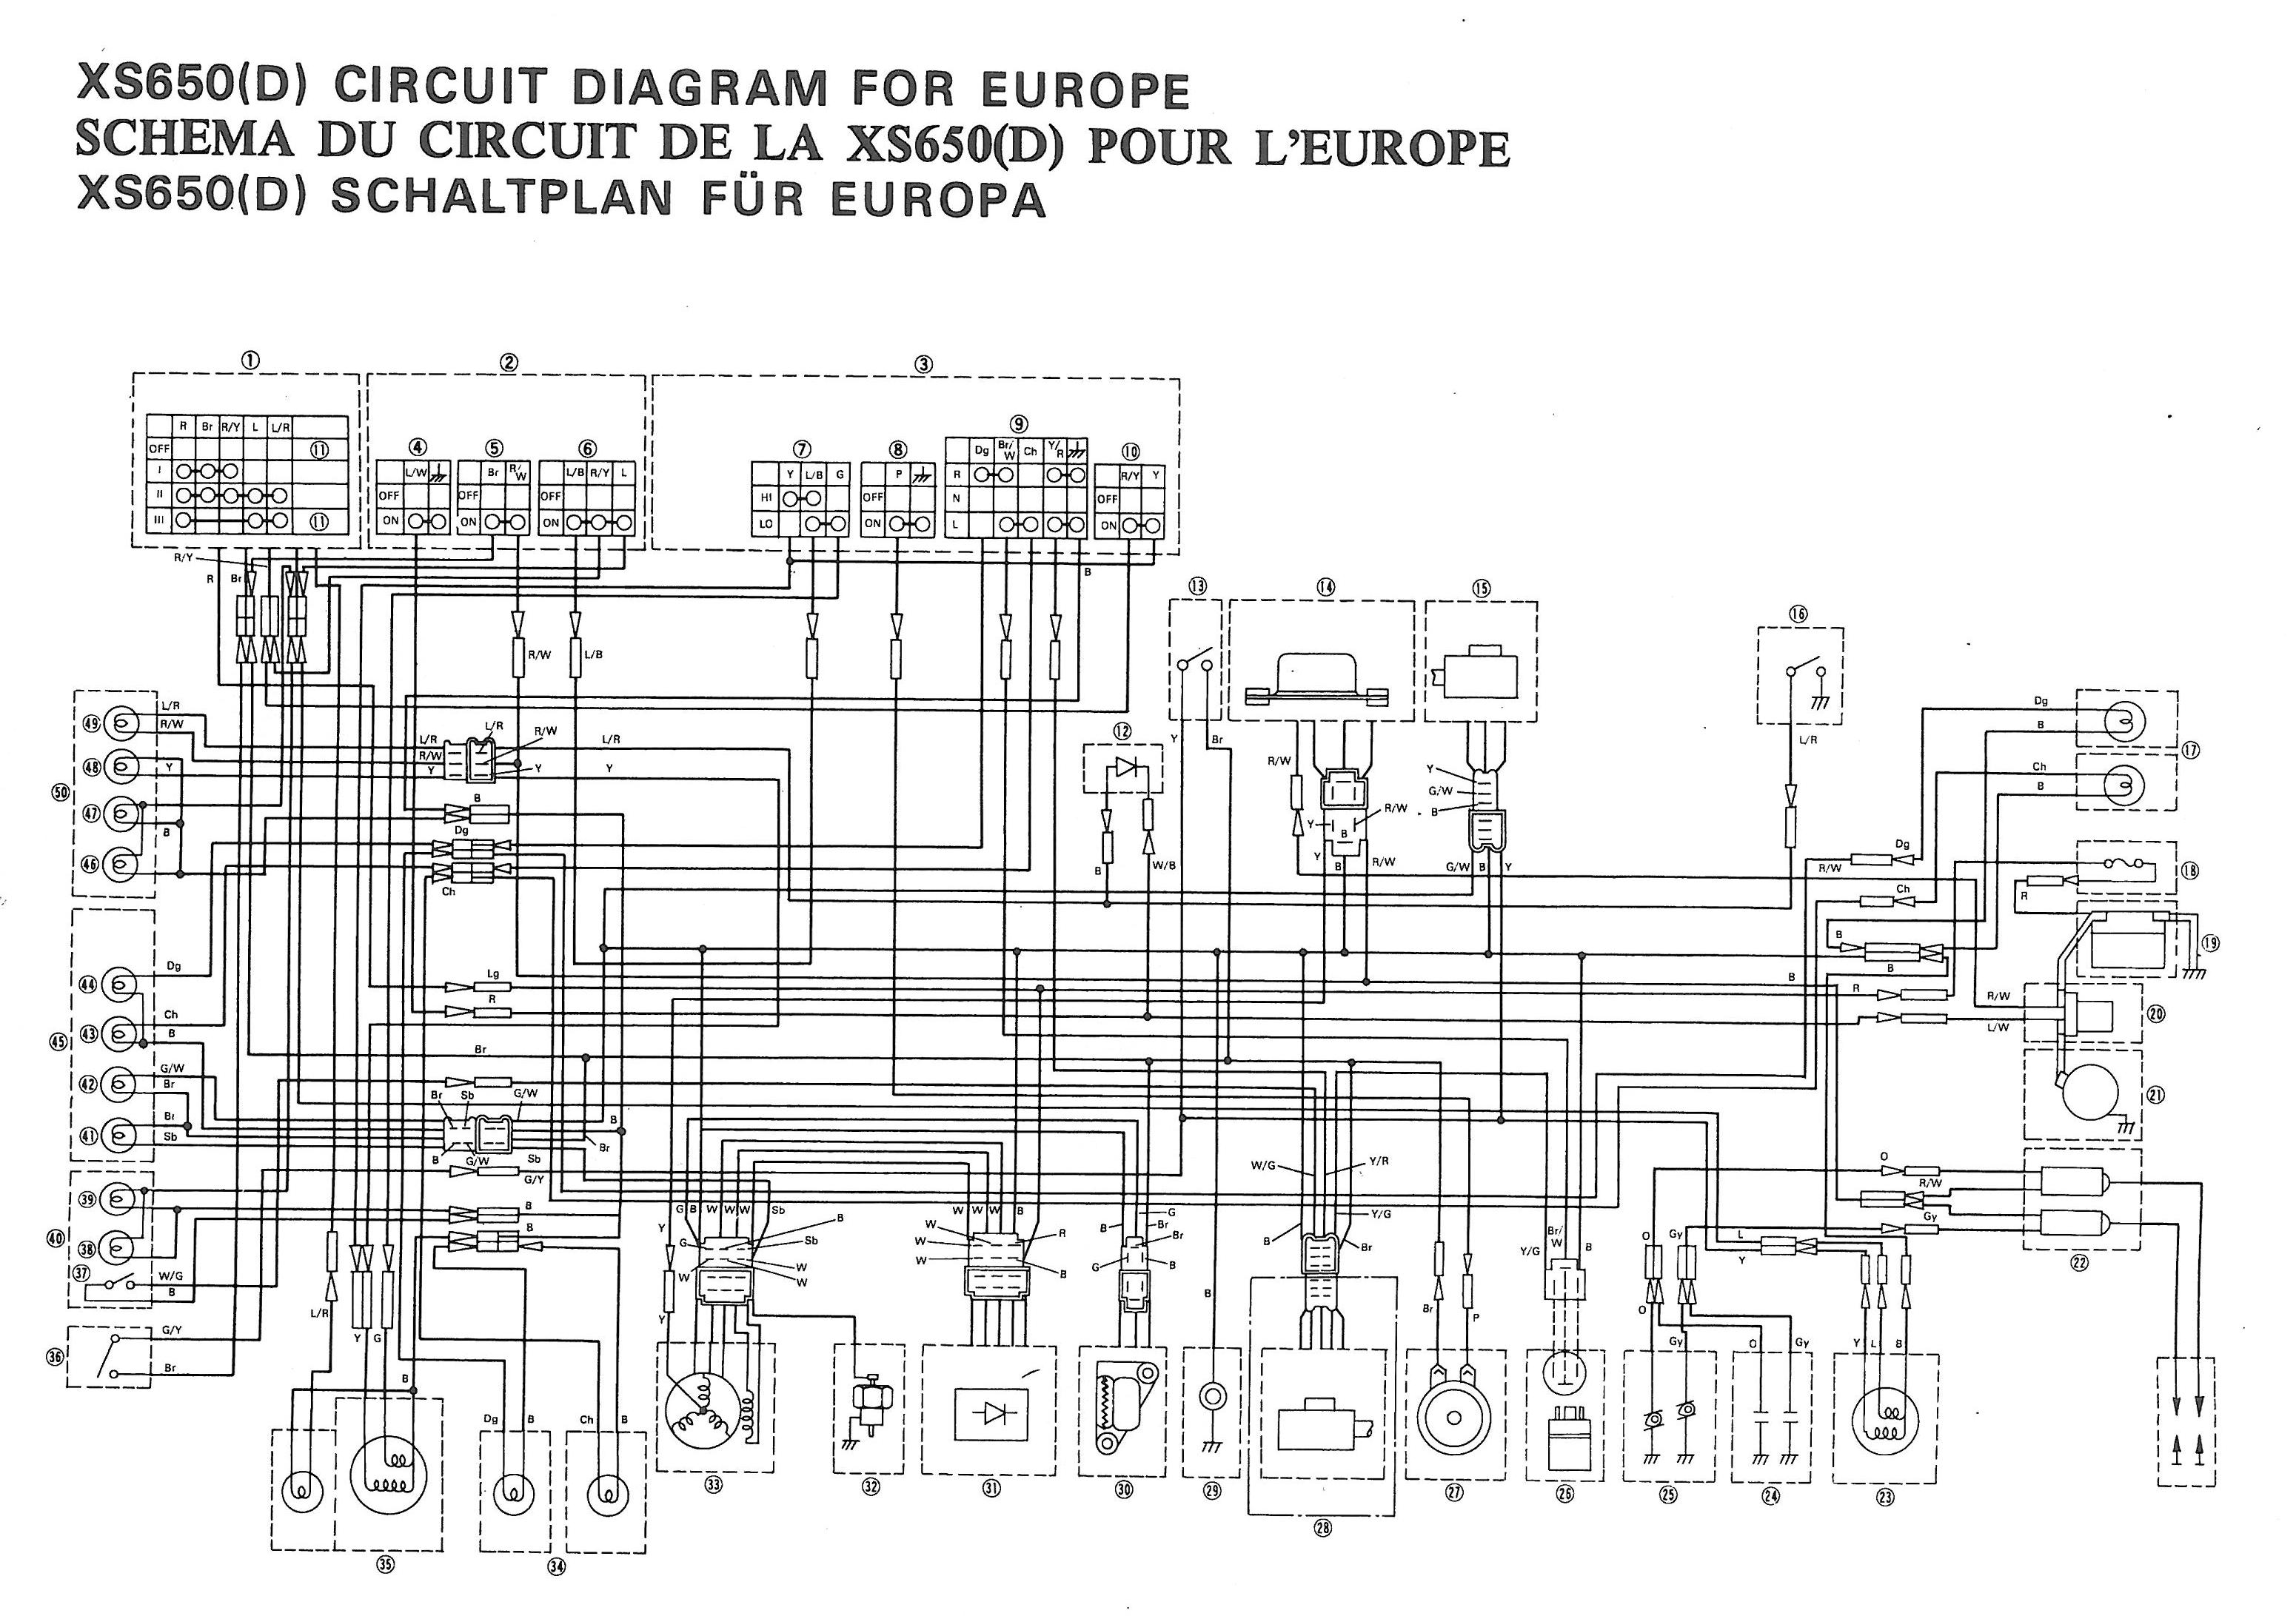 xs650 77 xs d wiring diagram thexscafe rh thexscafedotcom wordpress com xs650 wiring diagram without points Wiring Diagram Symbols